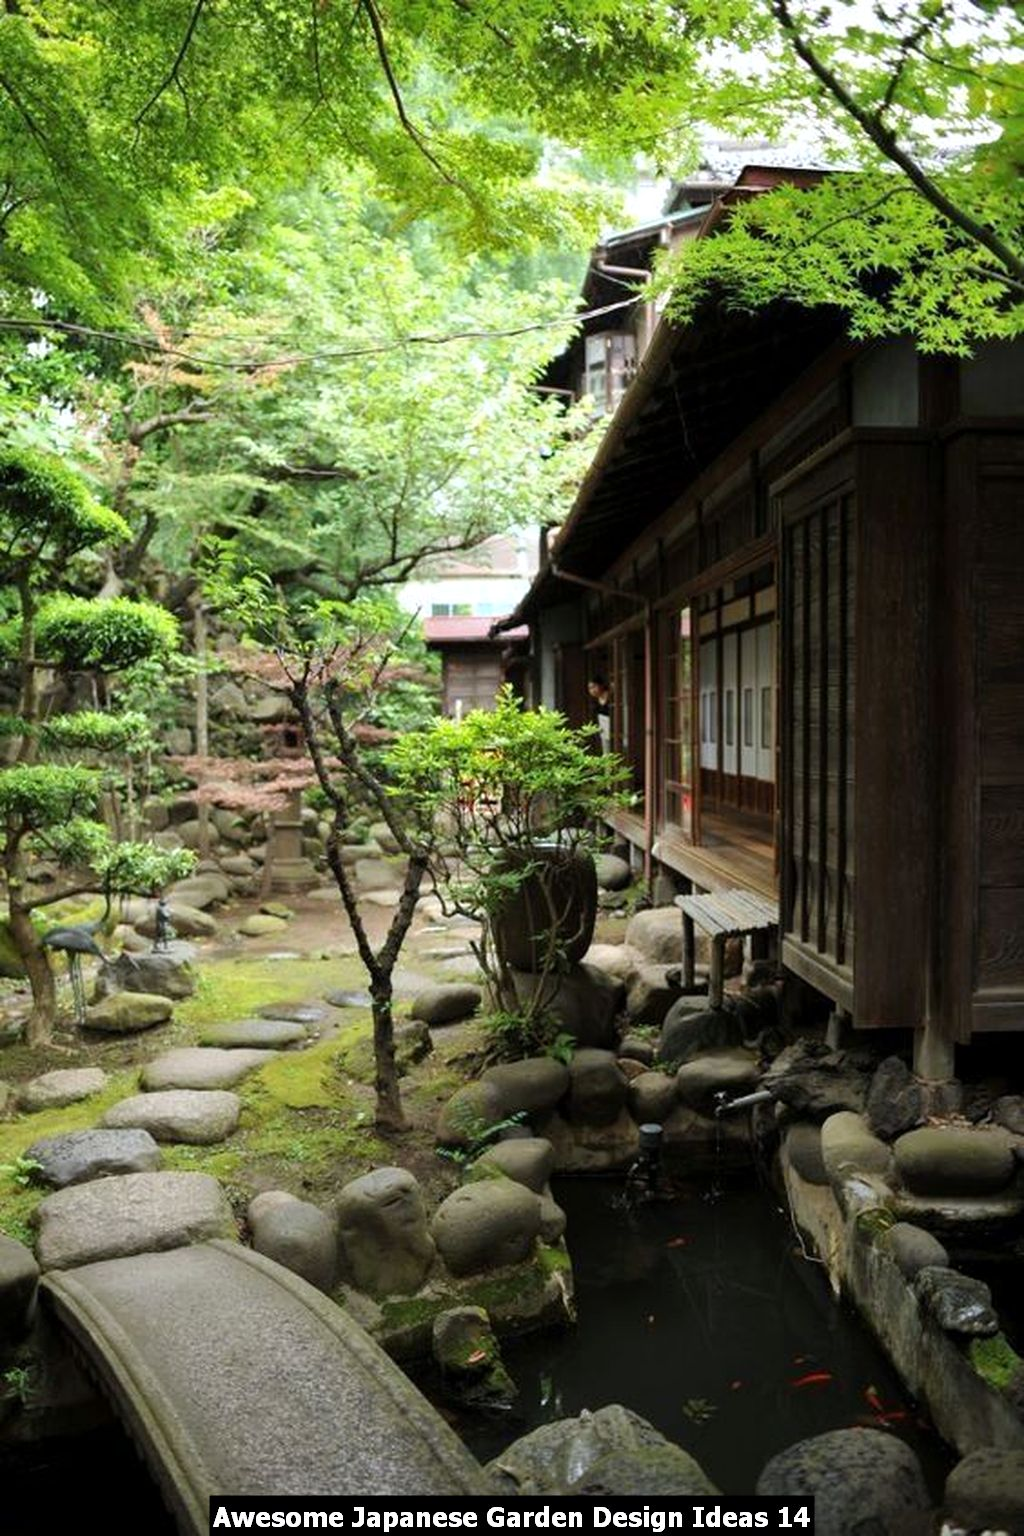 Awesome Japanese Garden Design Ideas 14